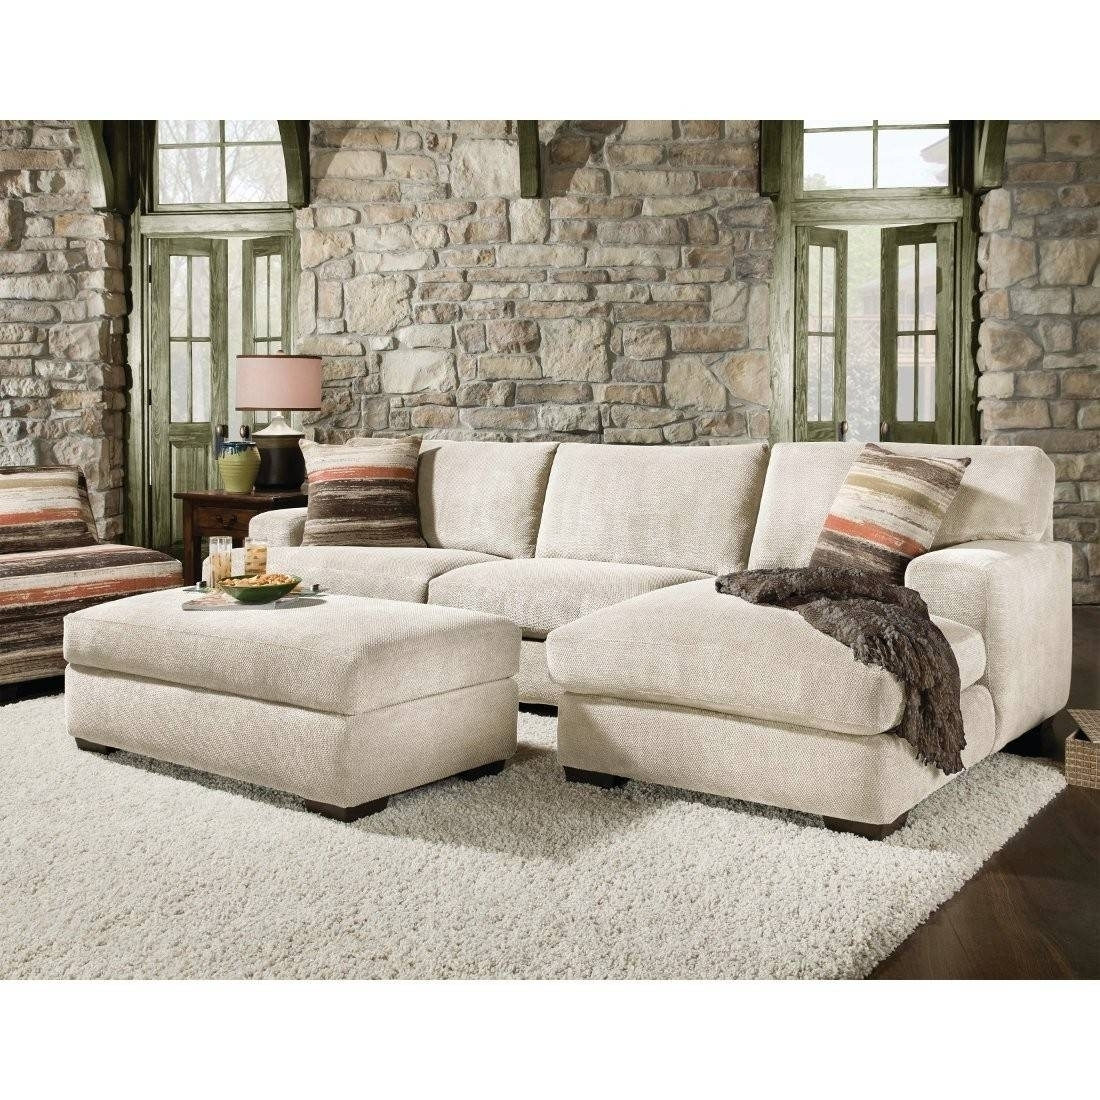 Scaled Down Sectional Sofas • Sectional Sofa With Regard To Down Sectional Sofas (Image 6 of 10)